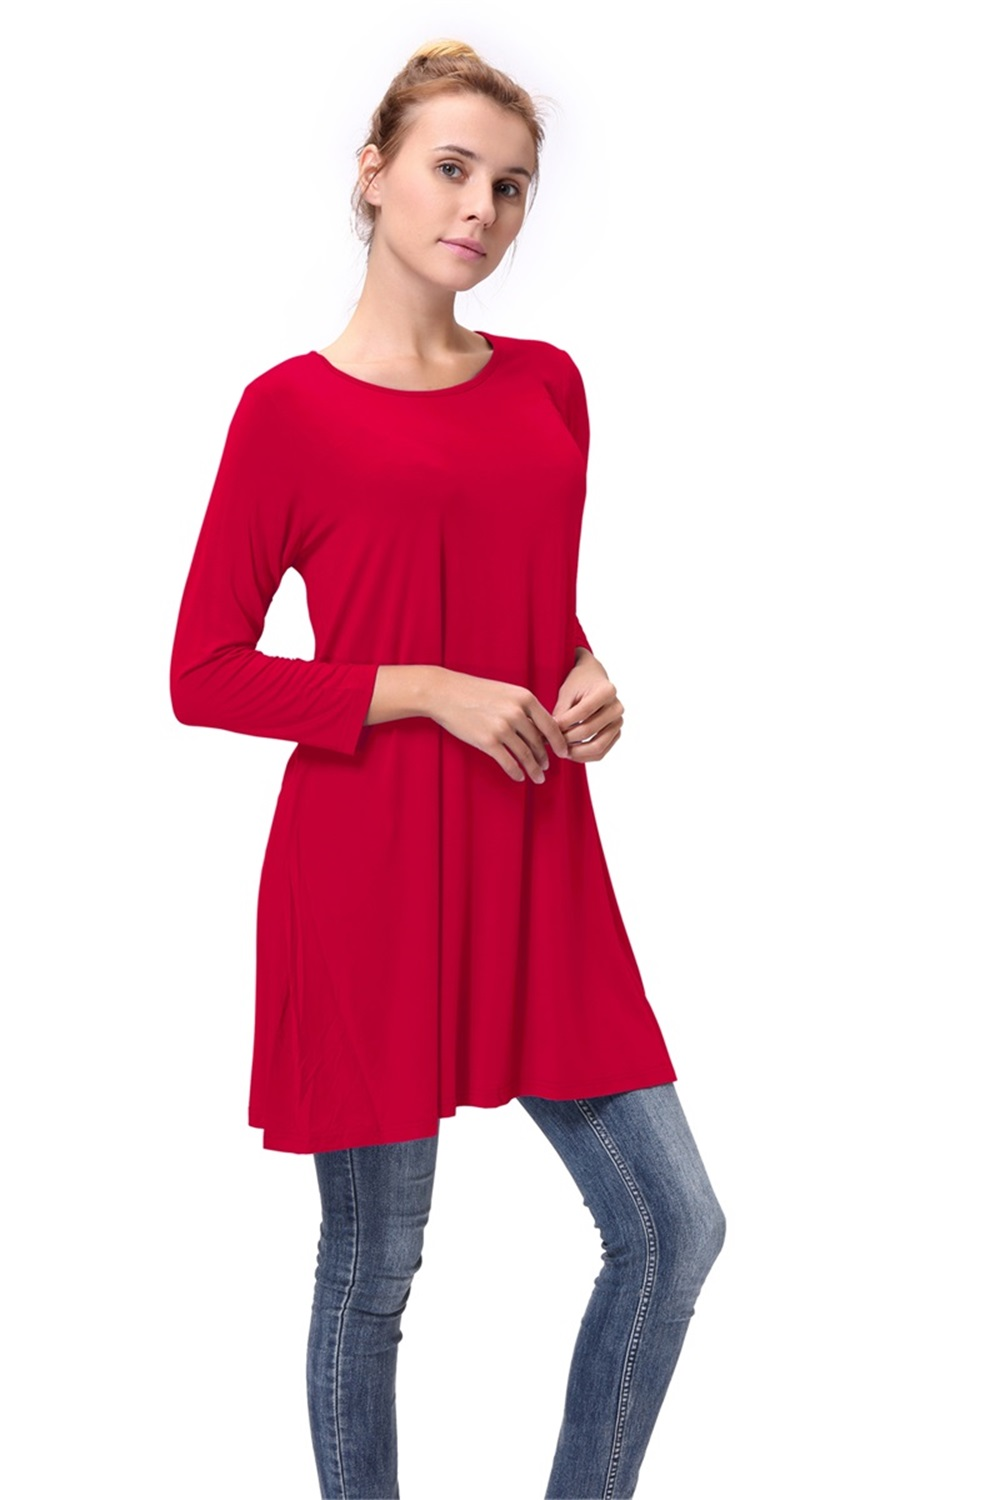 Women-Casual-Round-Neck-3-4-Long-Sleeve-Trapeze-Tunic-Top-Lady-Loose-Fit-Dress thumbnail 12